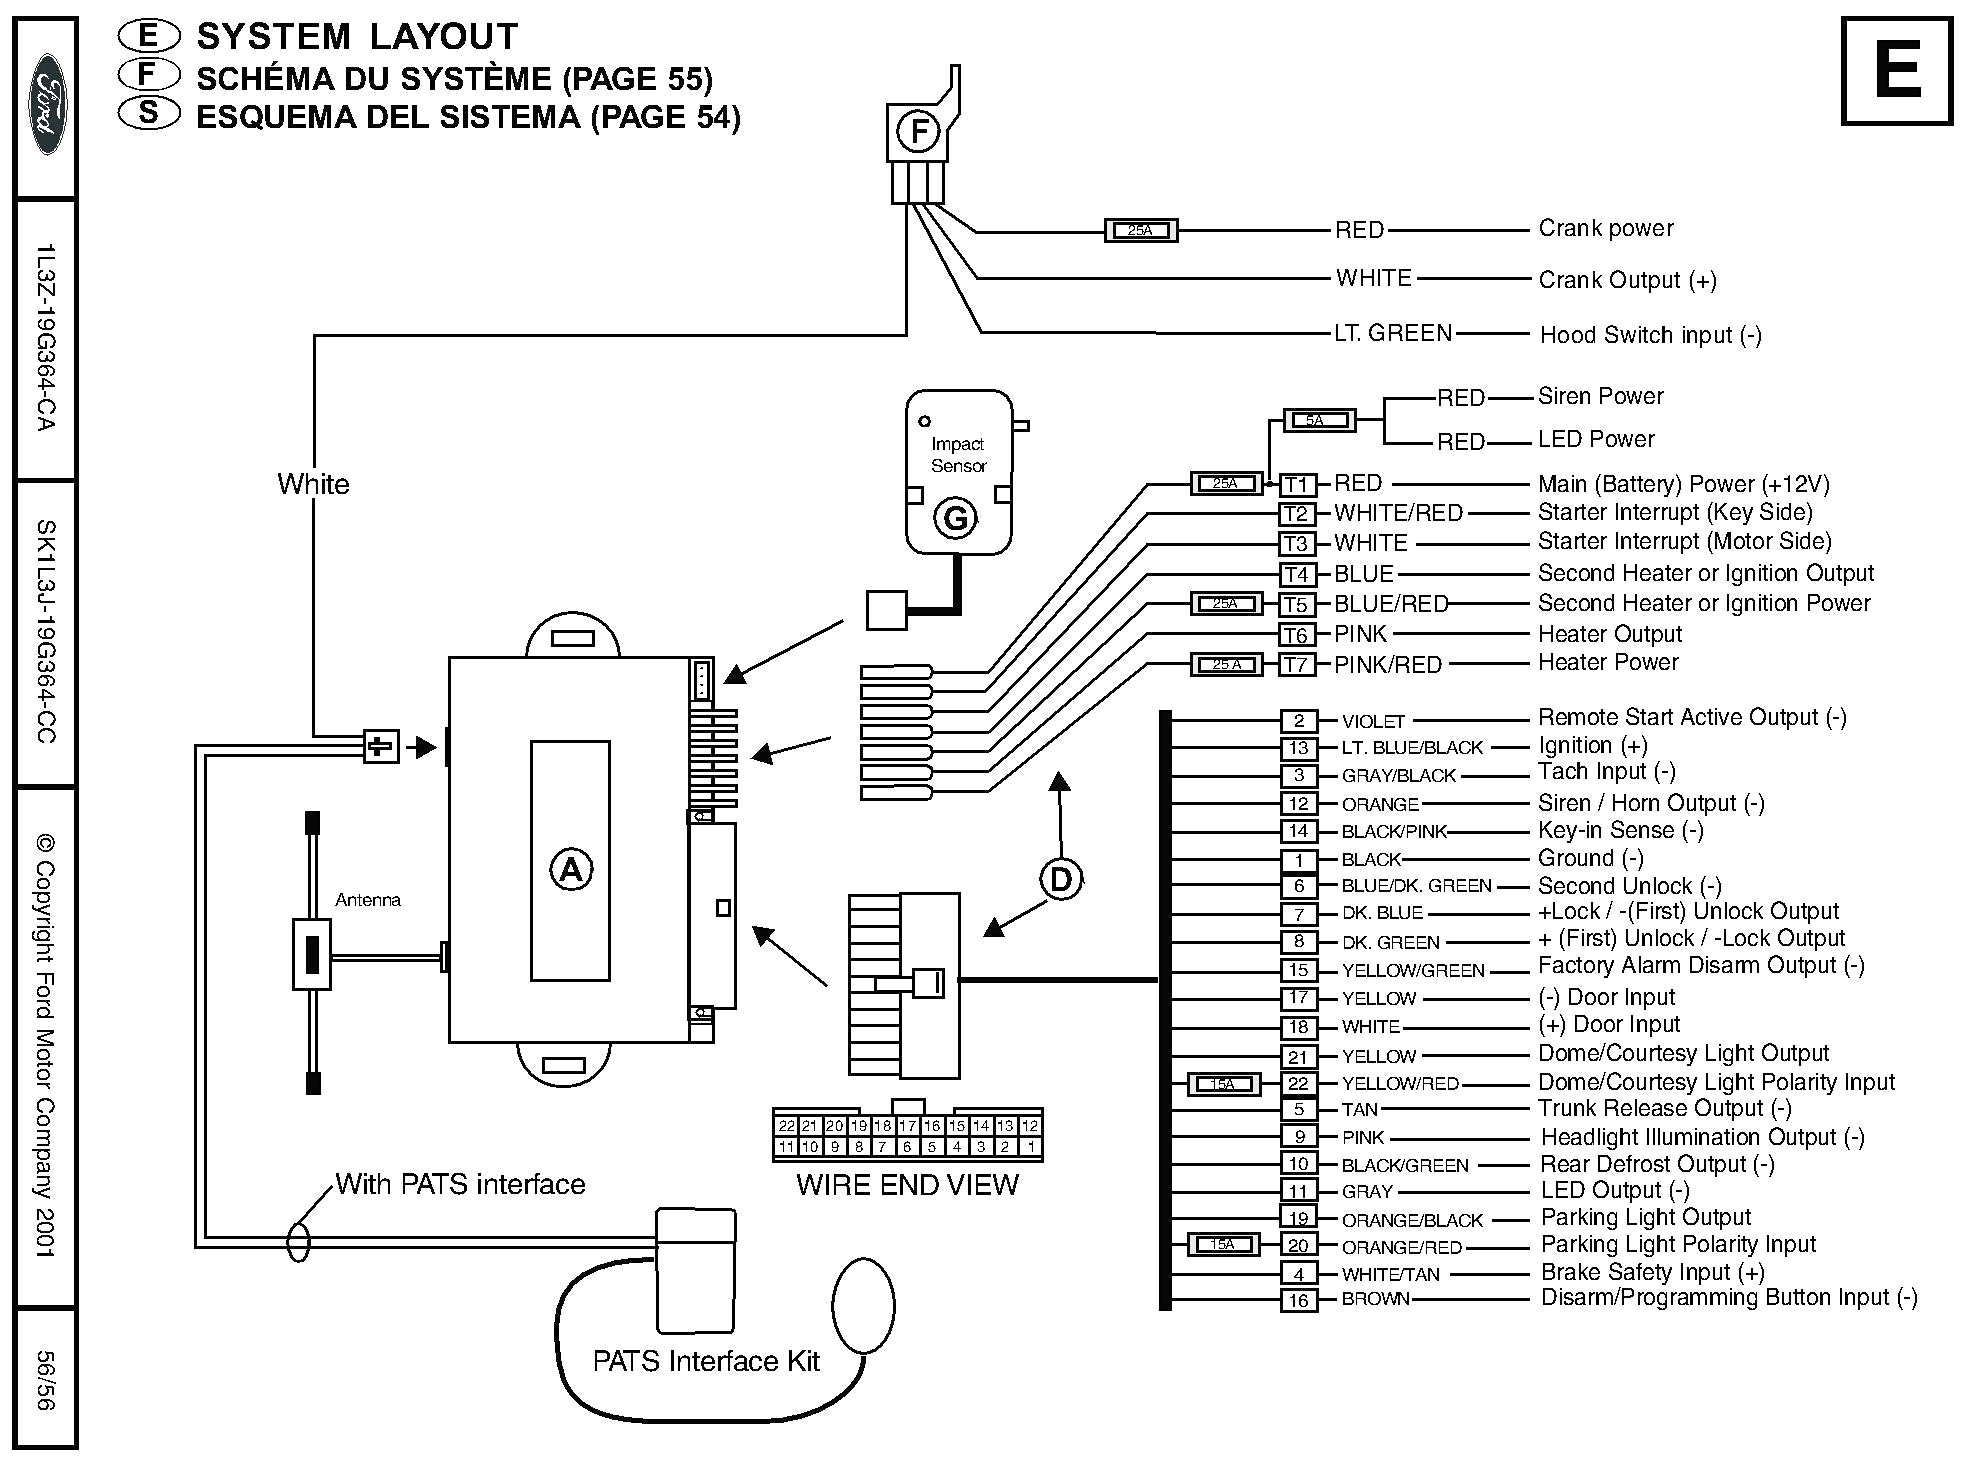 Foxguard Car Alarm Wiring Diagram | Wiring Liry on car alarm diagram, alarm valve, alarm circuit diagram, alarm horn, alarm panel wiring, fire suppression diagram, alarm wiring circuit, 4 wire proximity diagram, alarm wiring tools, alarm cable, alarm wiring symbols, prox switch diagram, alarm switch diagram, alarm wiring guide, alarm installation diagram, vehicle alarm system diagram,